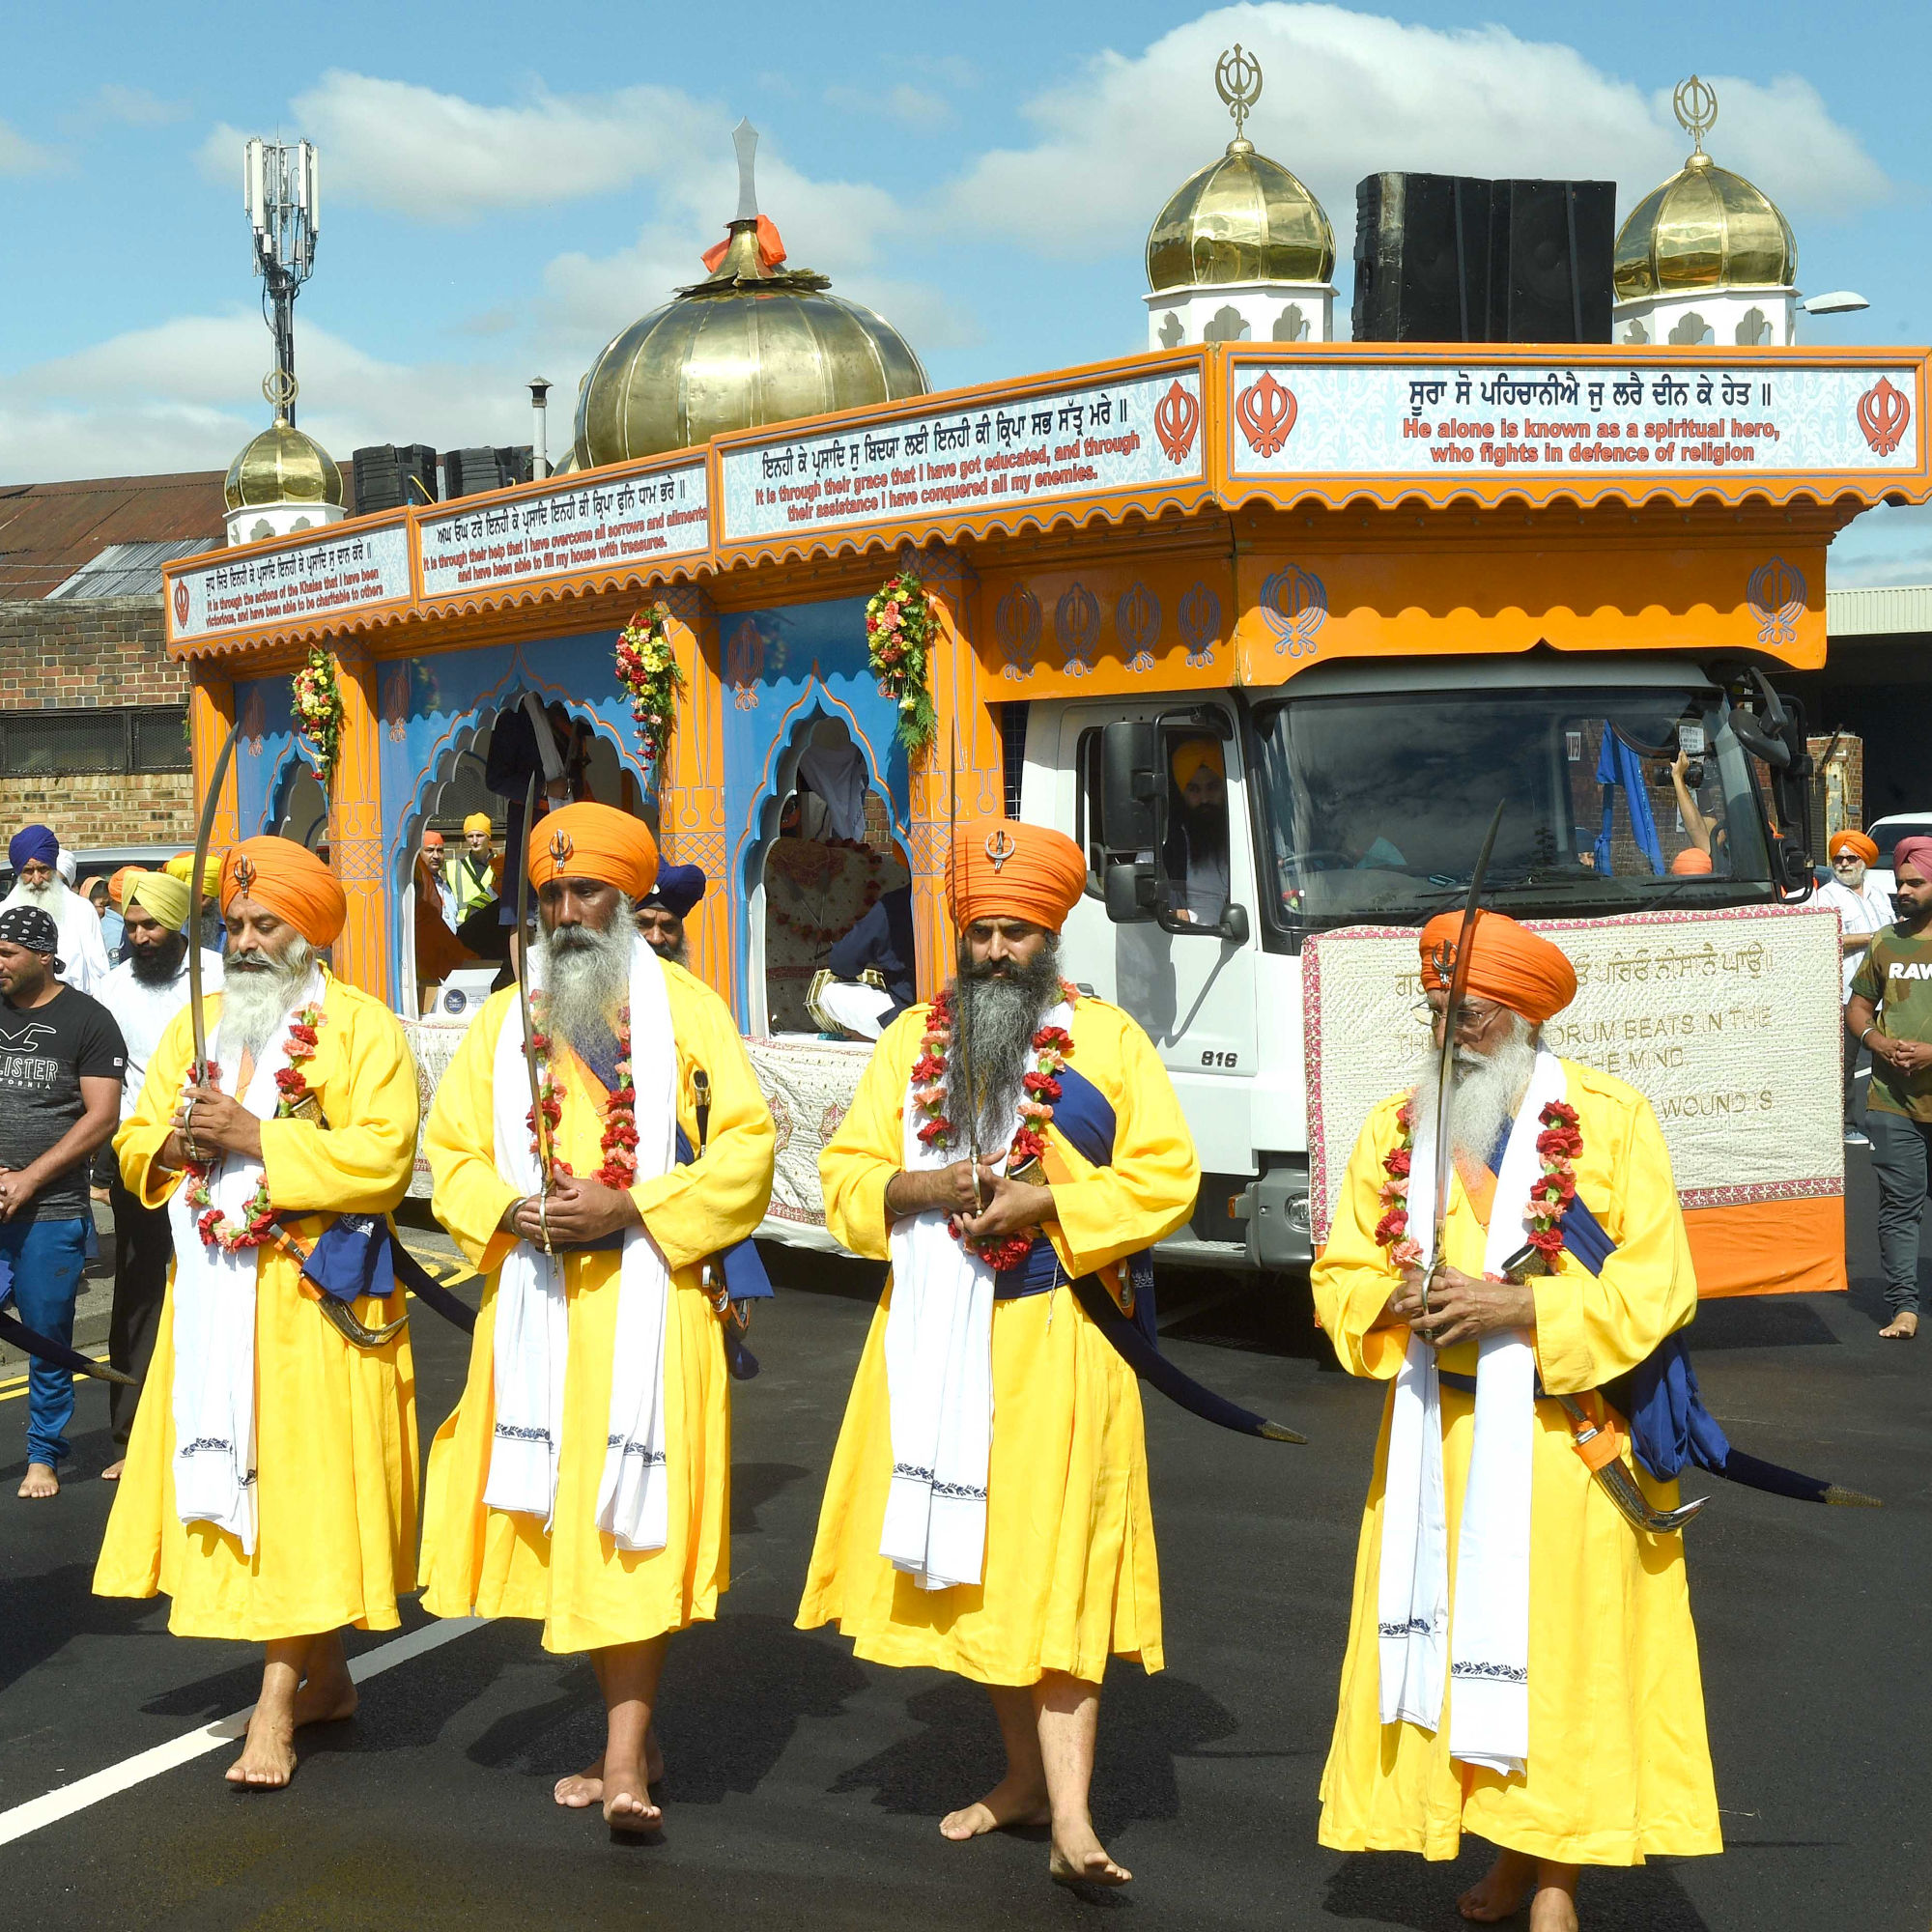 A photo of the Nagar Kirtan parade which links to a page about strong communities